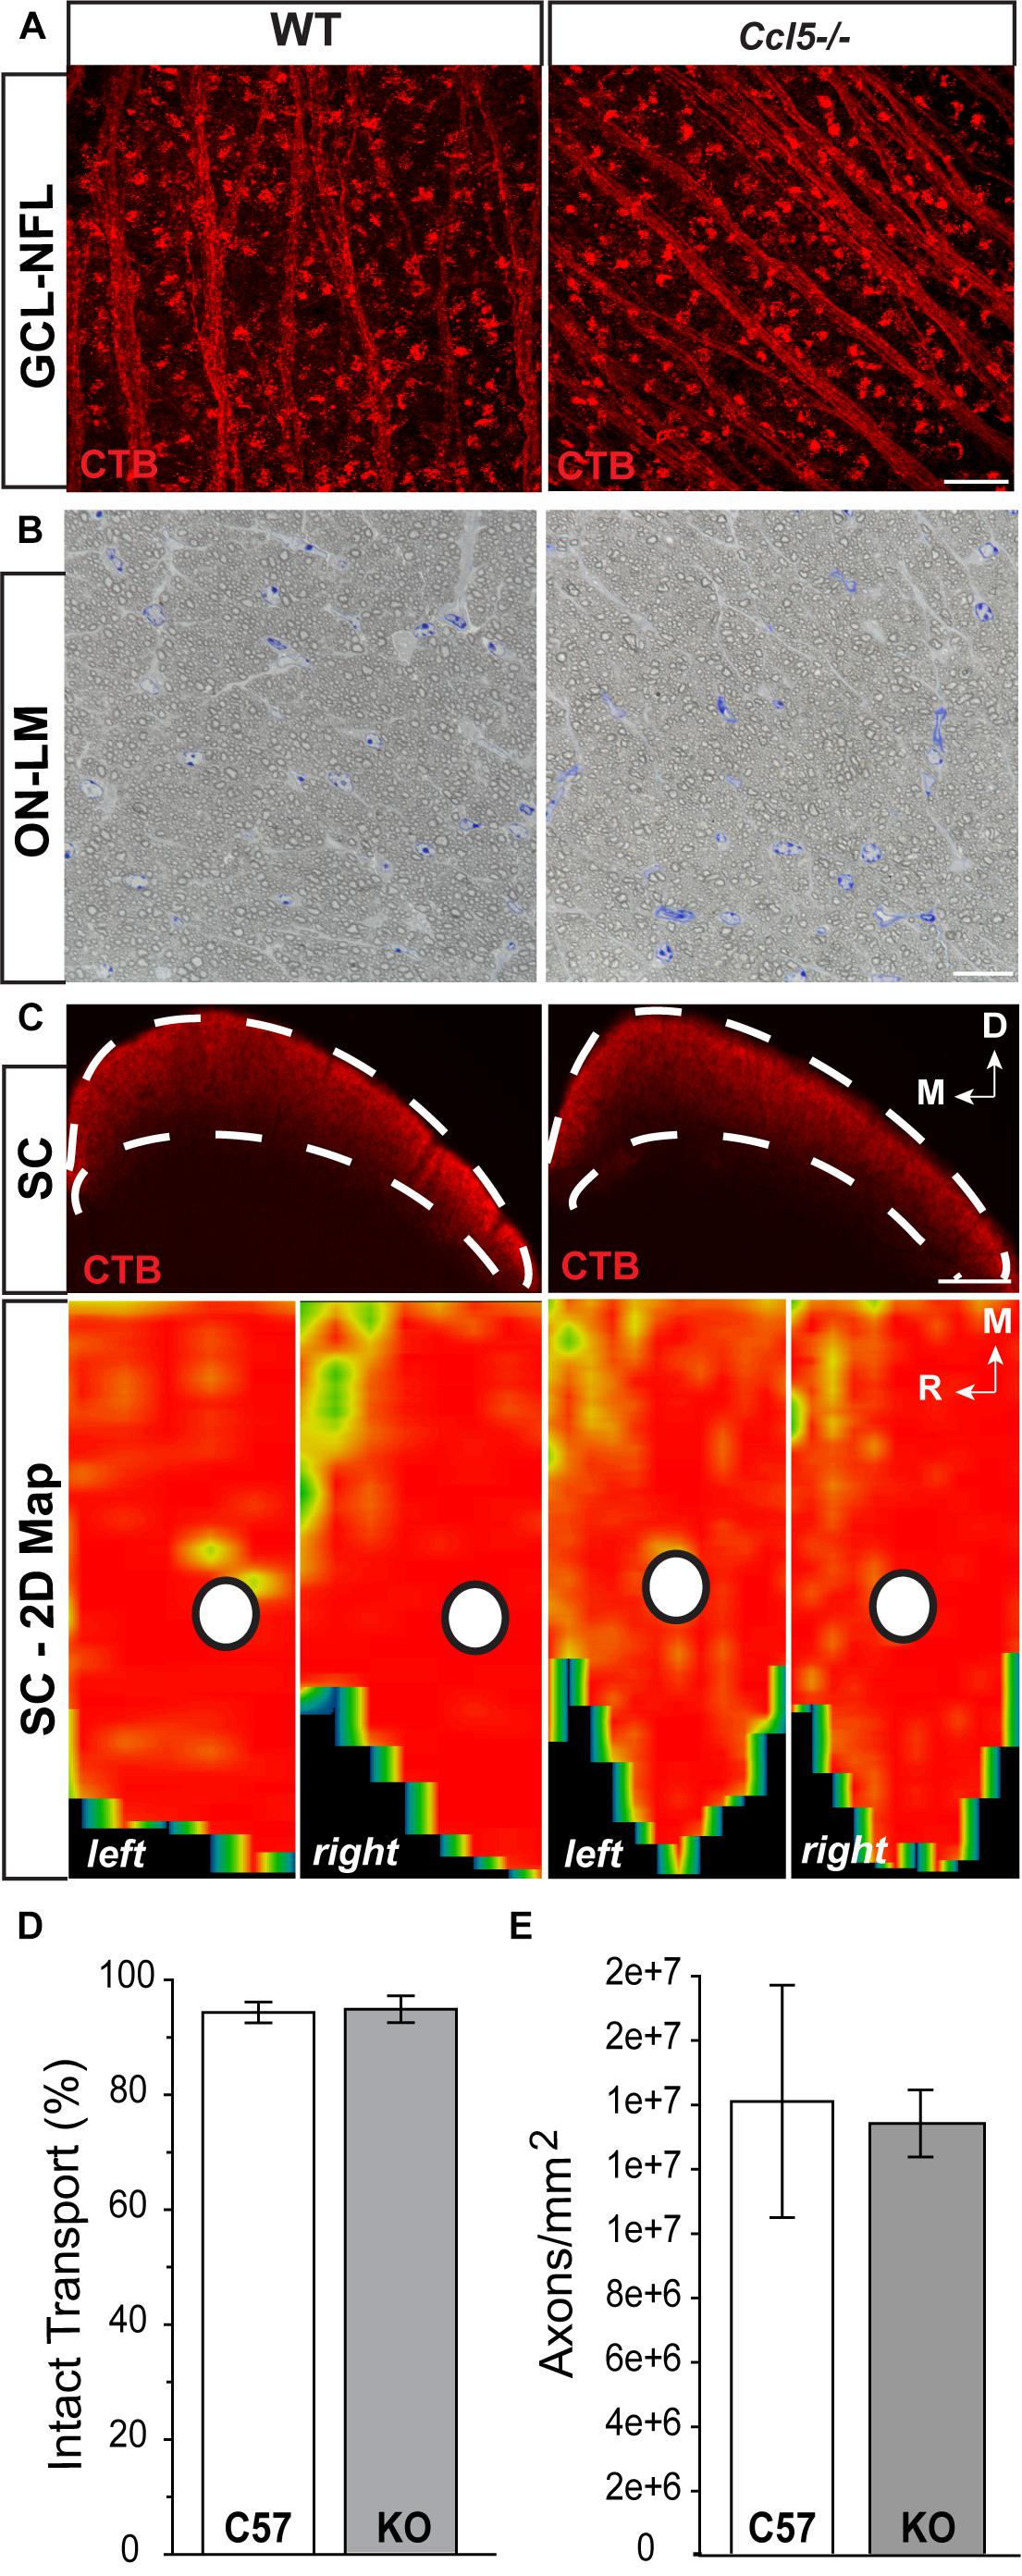 Frontiers Ccl5 Mediates Proper Wiring Of Feedforward And Lateral Silver Retina